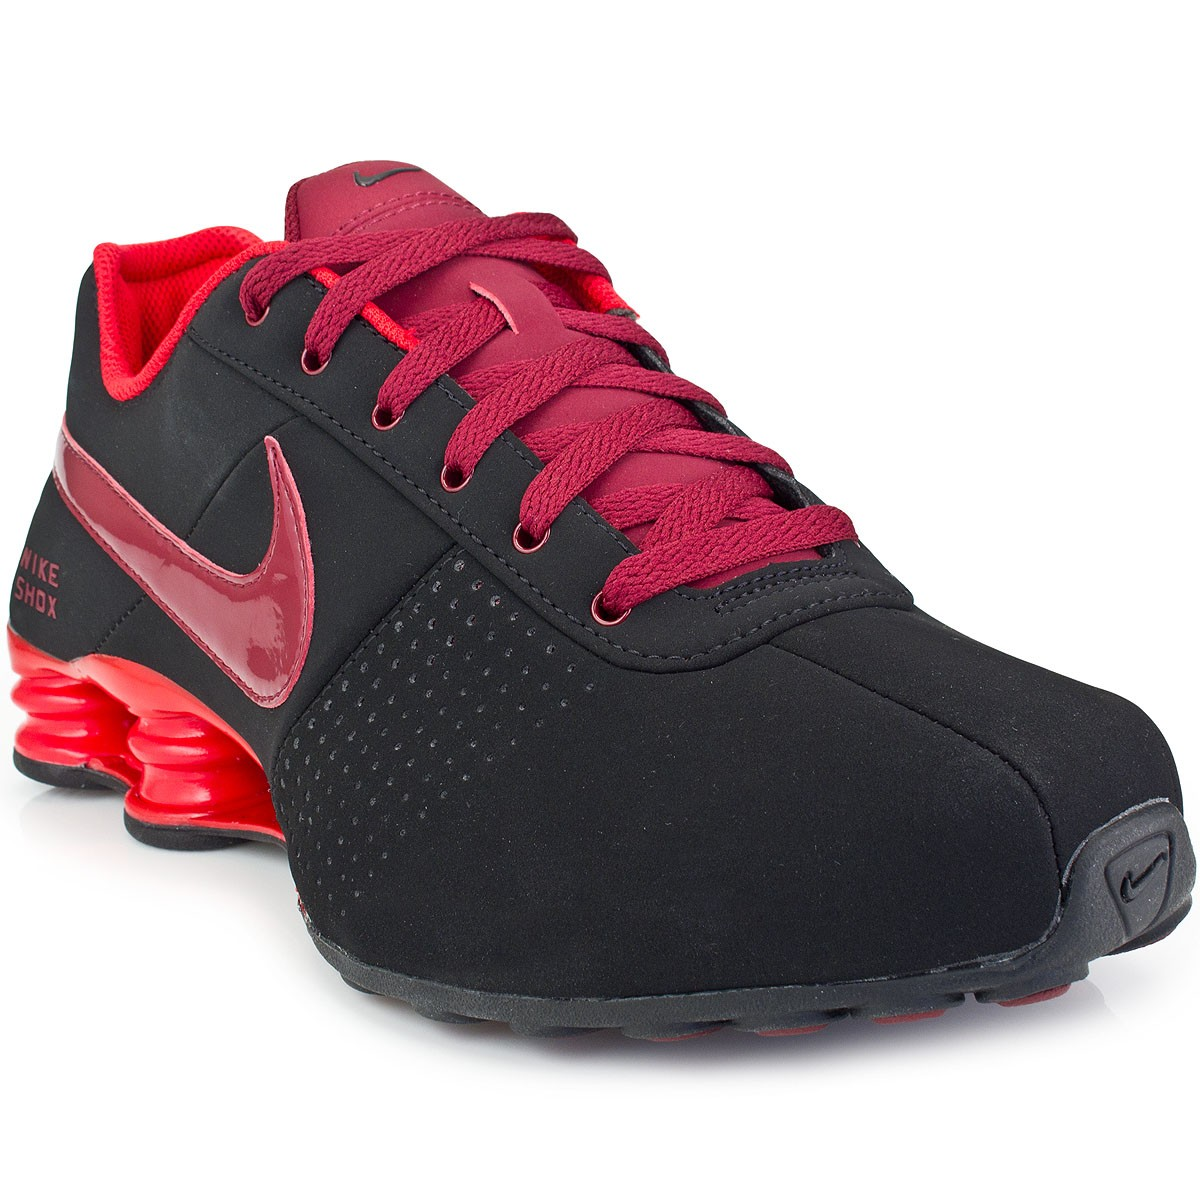 new product 2c6d3 185d6 new zealand tênis nike shox deliver 317547 1a977 8aed6